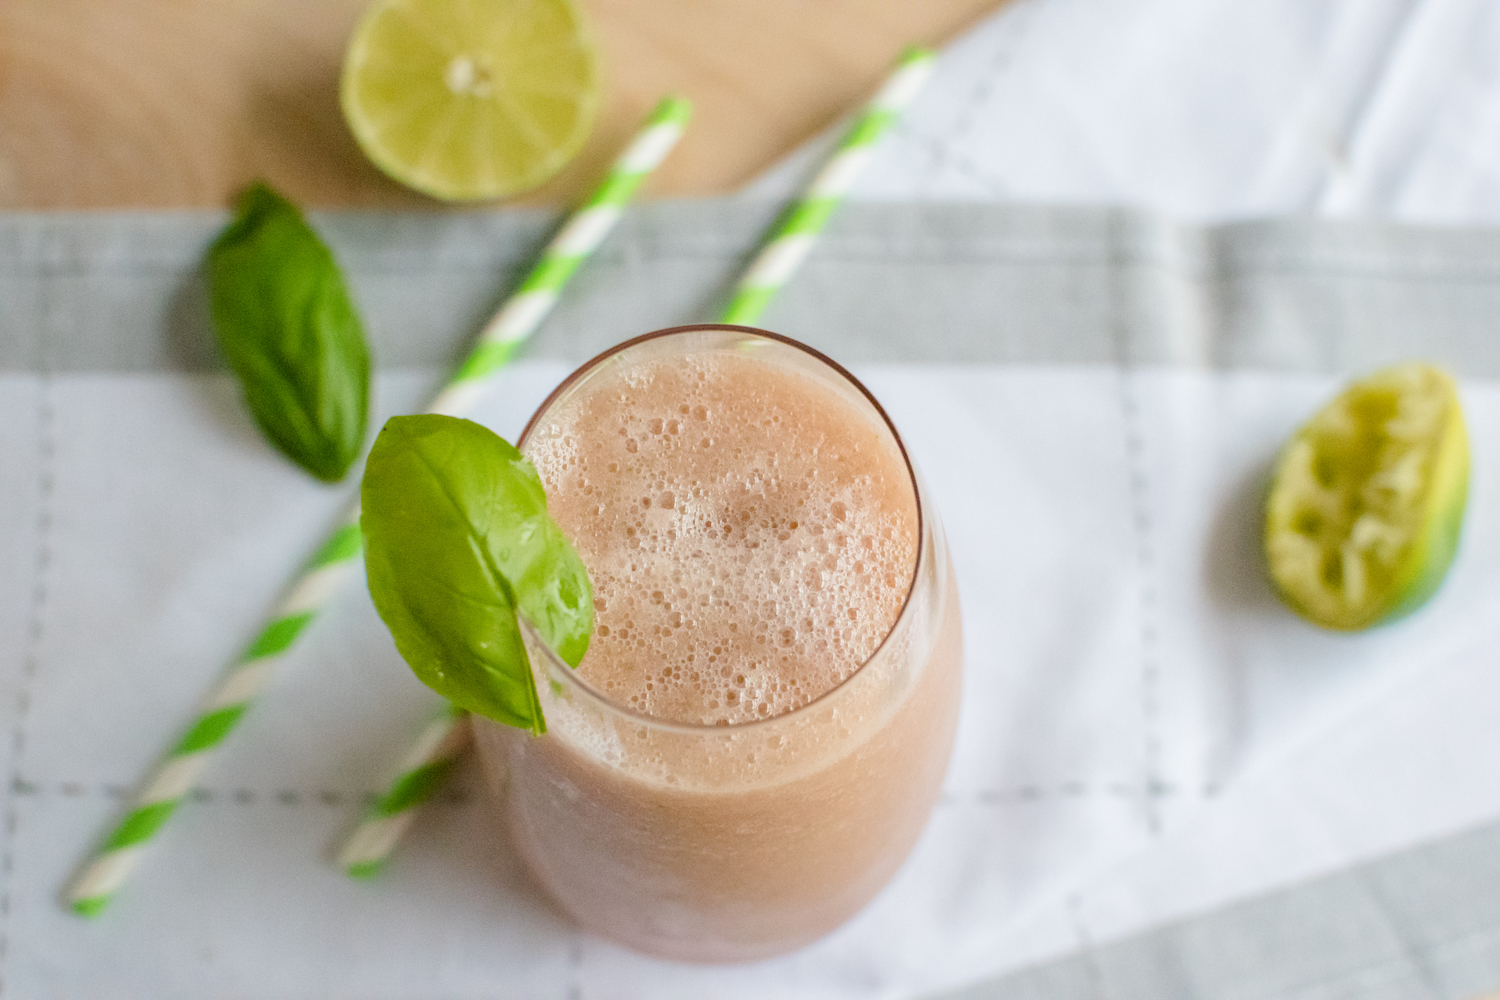 Watermelon Rind Basil Smoothie Vurde